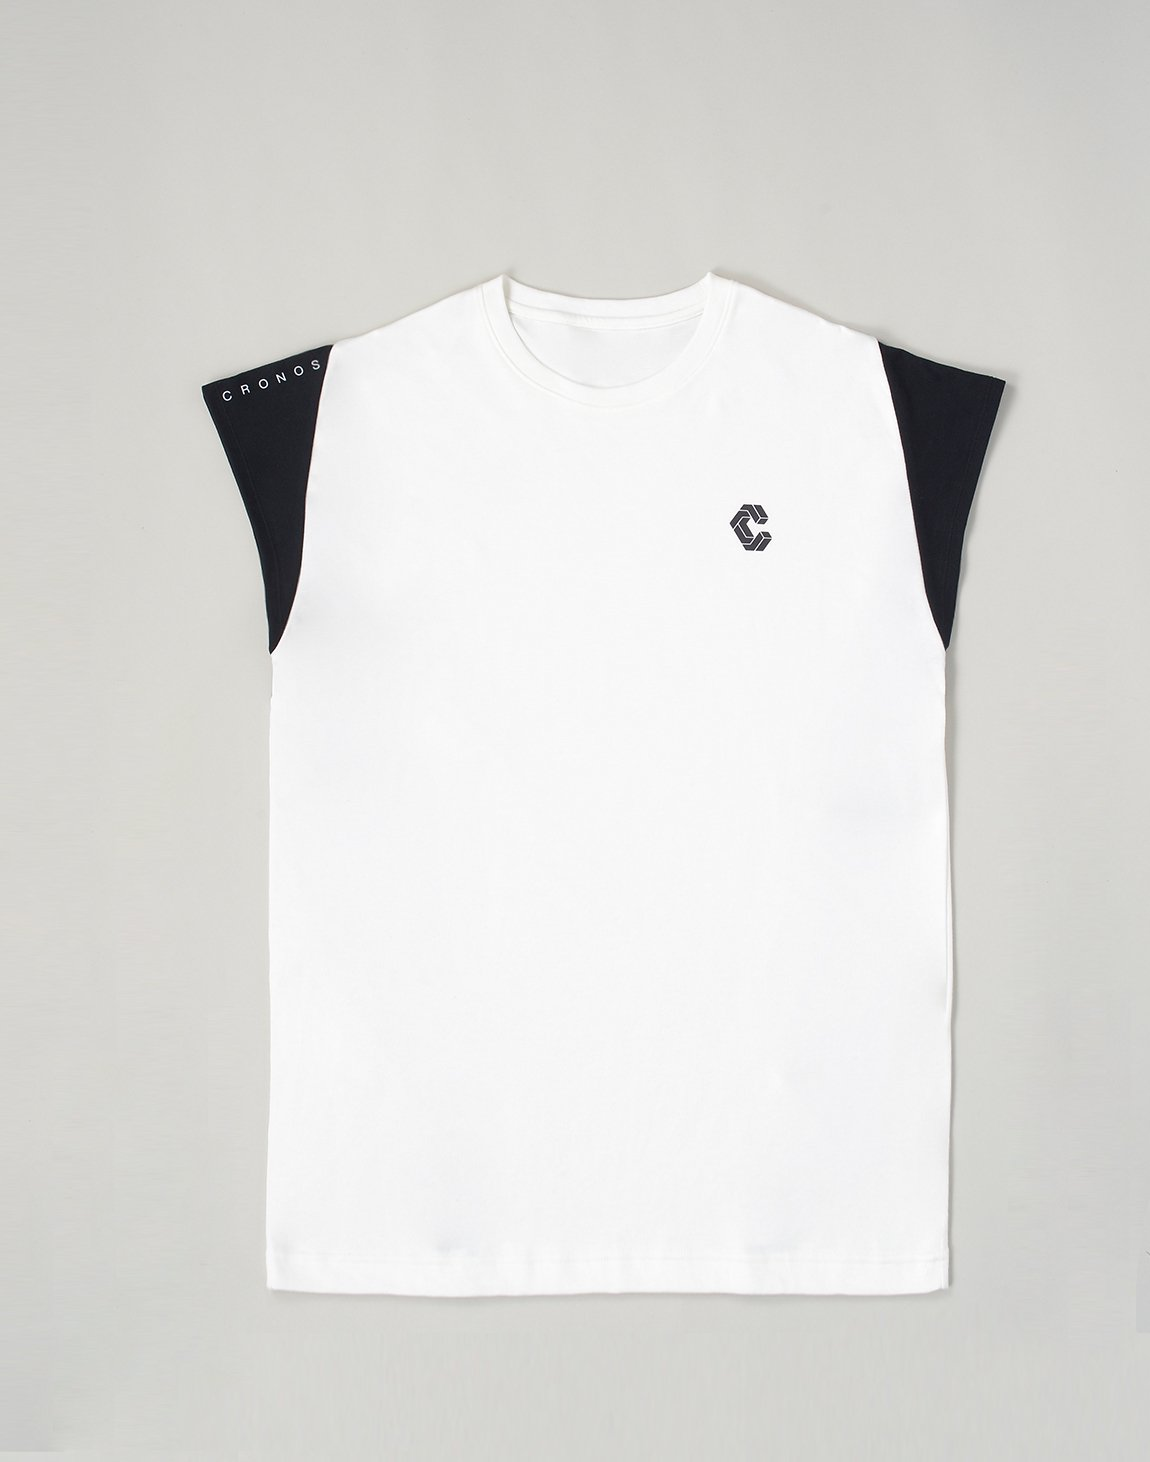 <img class='new_mark_img1' src='https://img.shop-pro.jp/img/new/icons55.gif' style='border:none;display:inline;margin:0px;padding:0px;width:auto;' />CRONOS LATS LINE CAP SLEEVE TOP【WHITE】